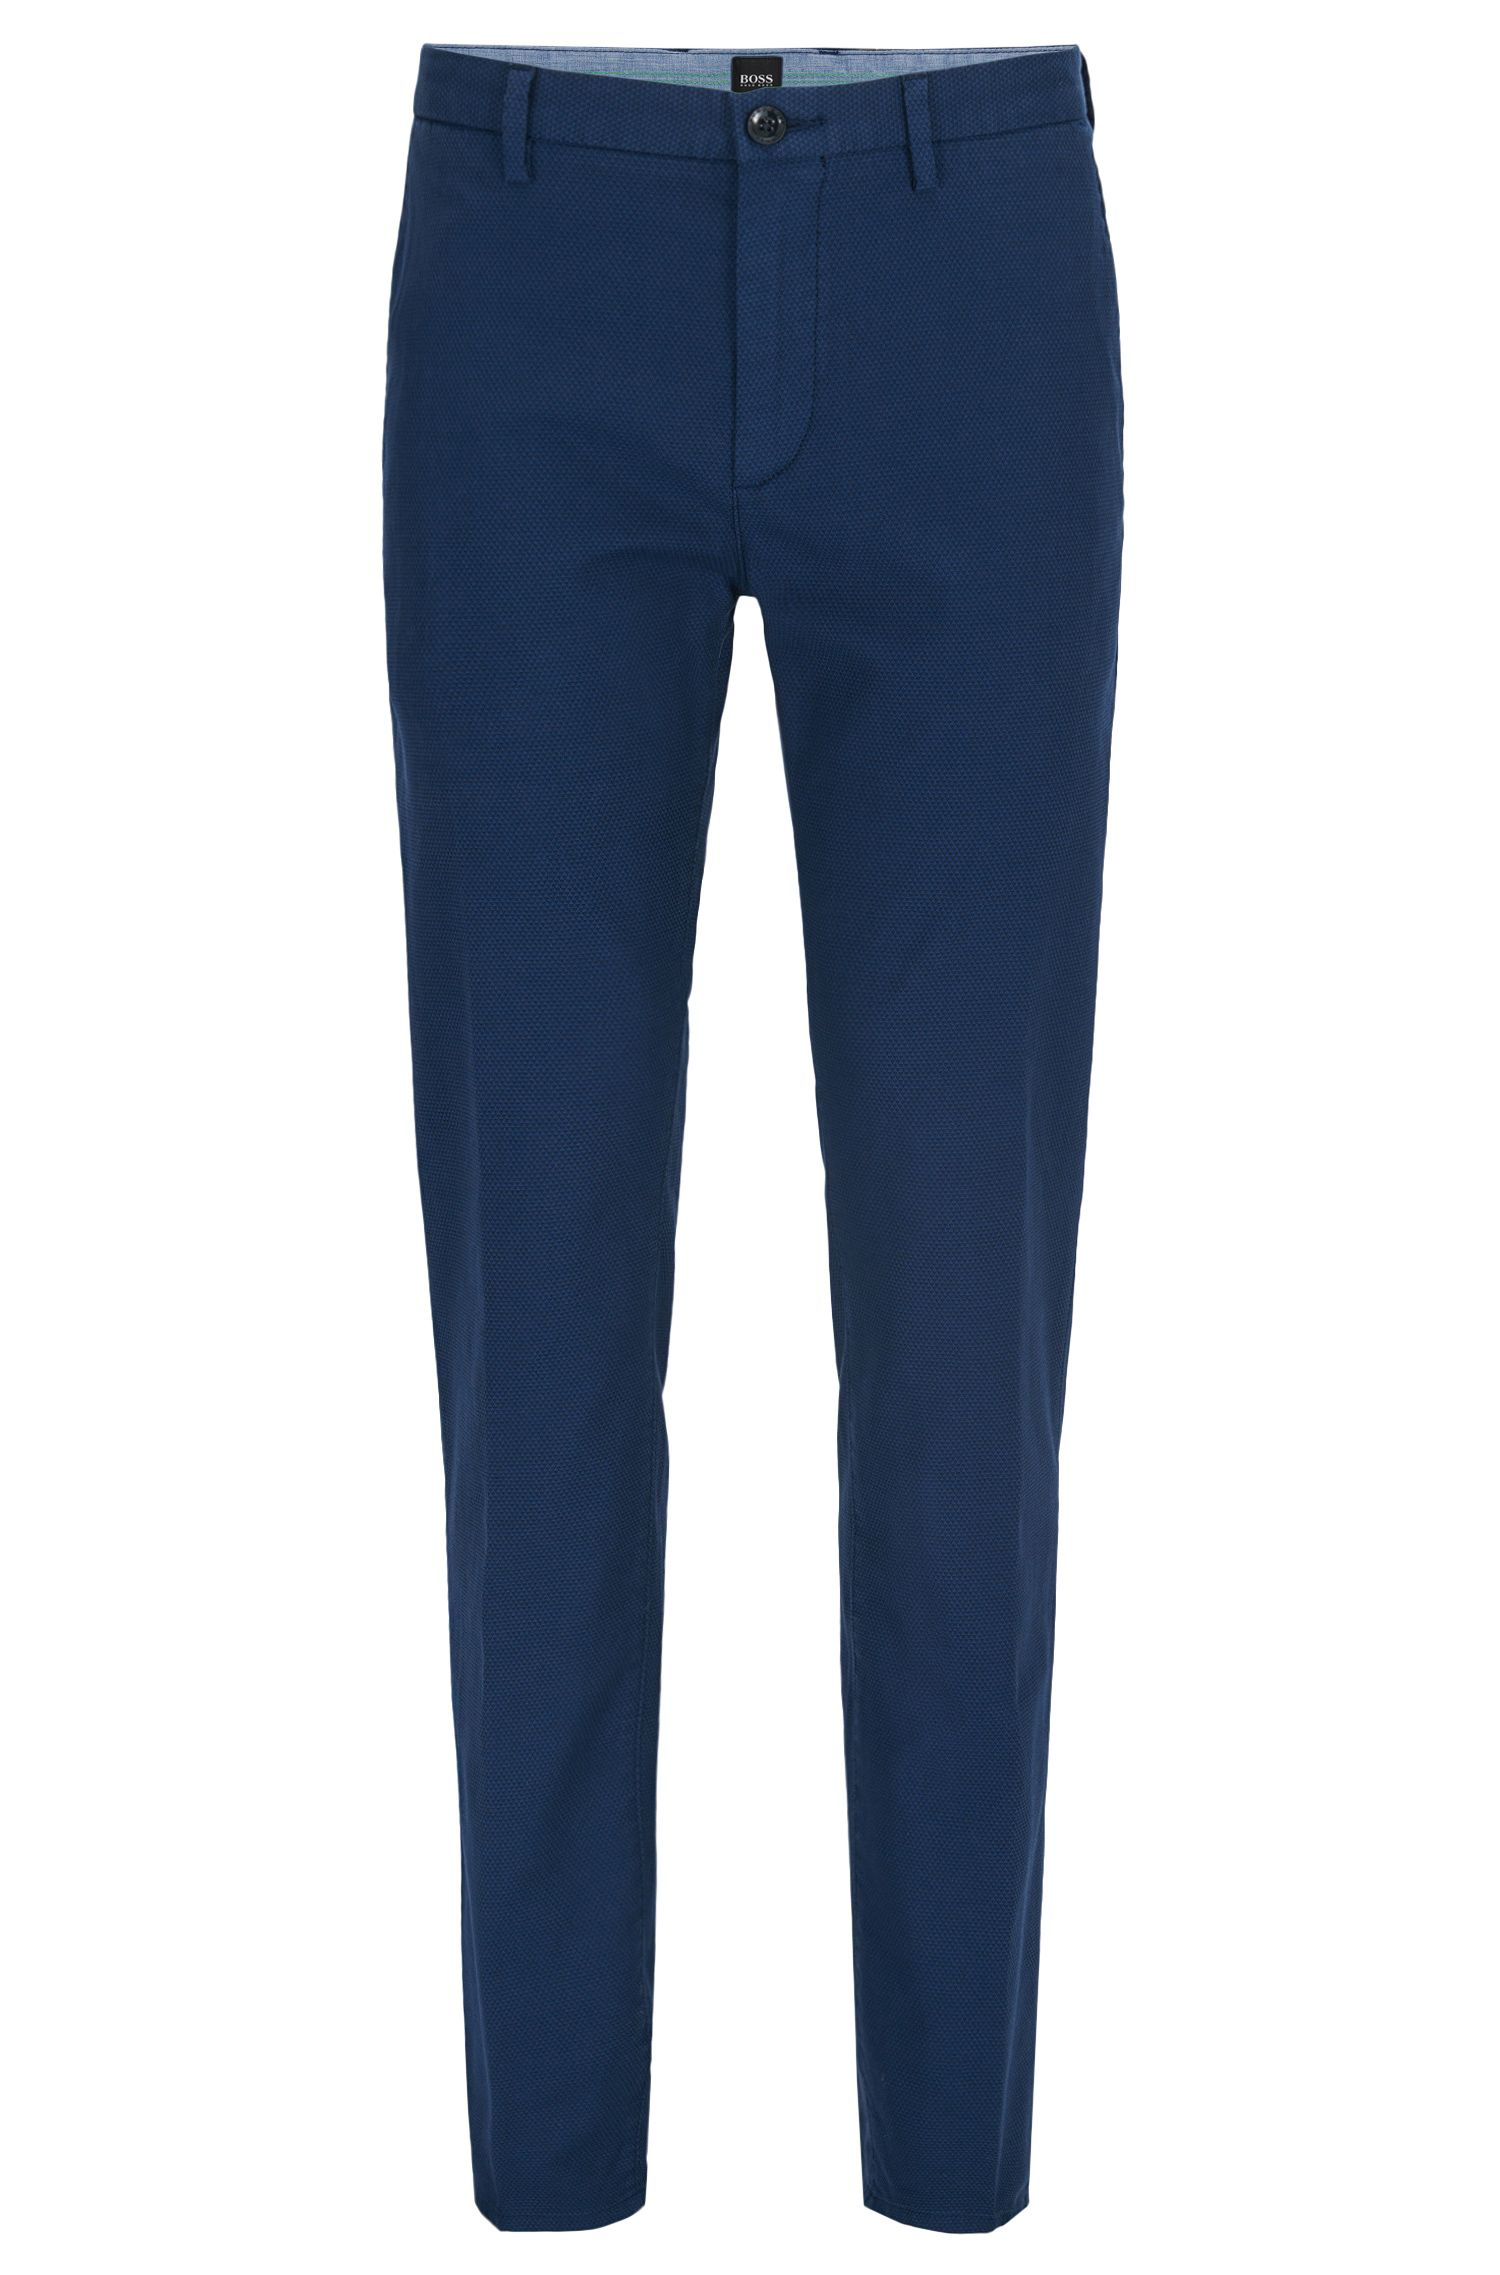 Stretch Cotton Chino Pant, Slim Fit | Rogan D, Dark Blue